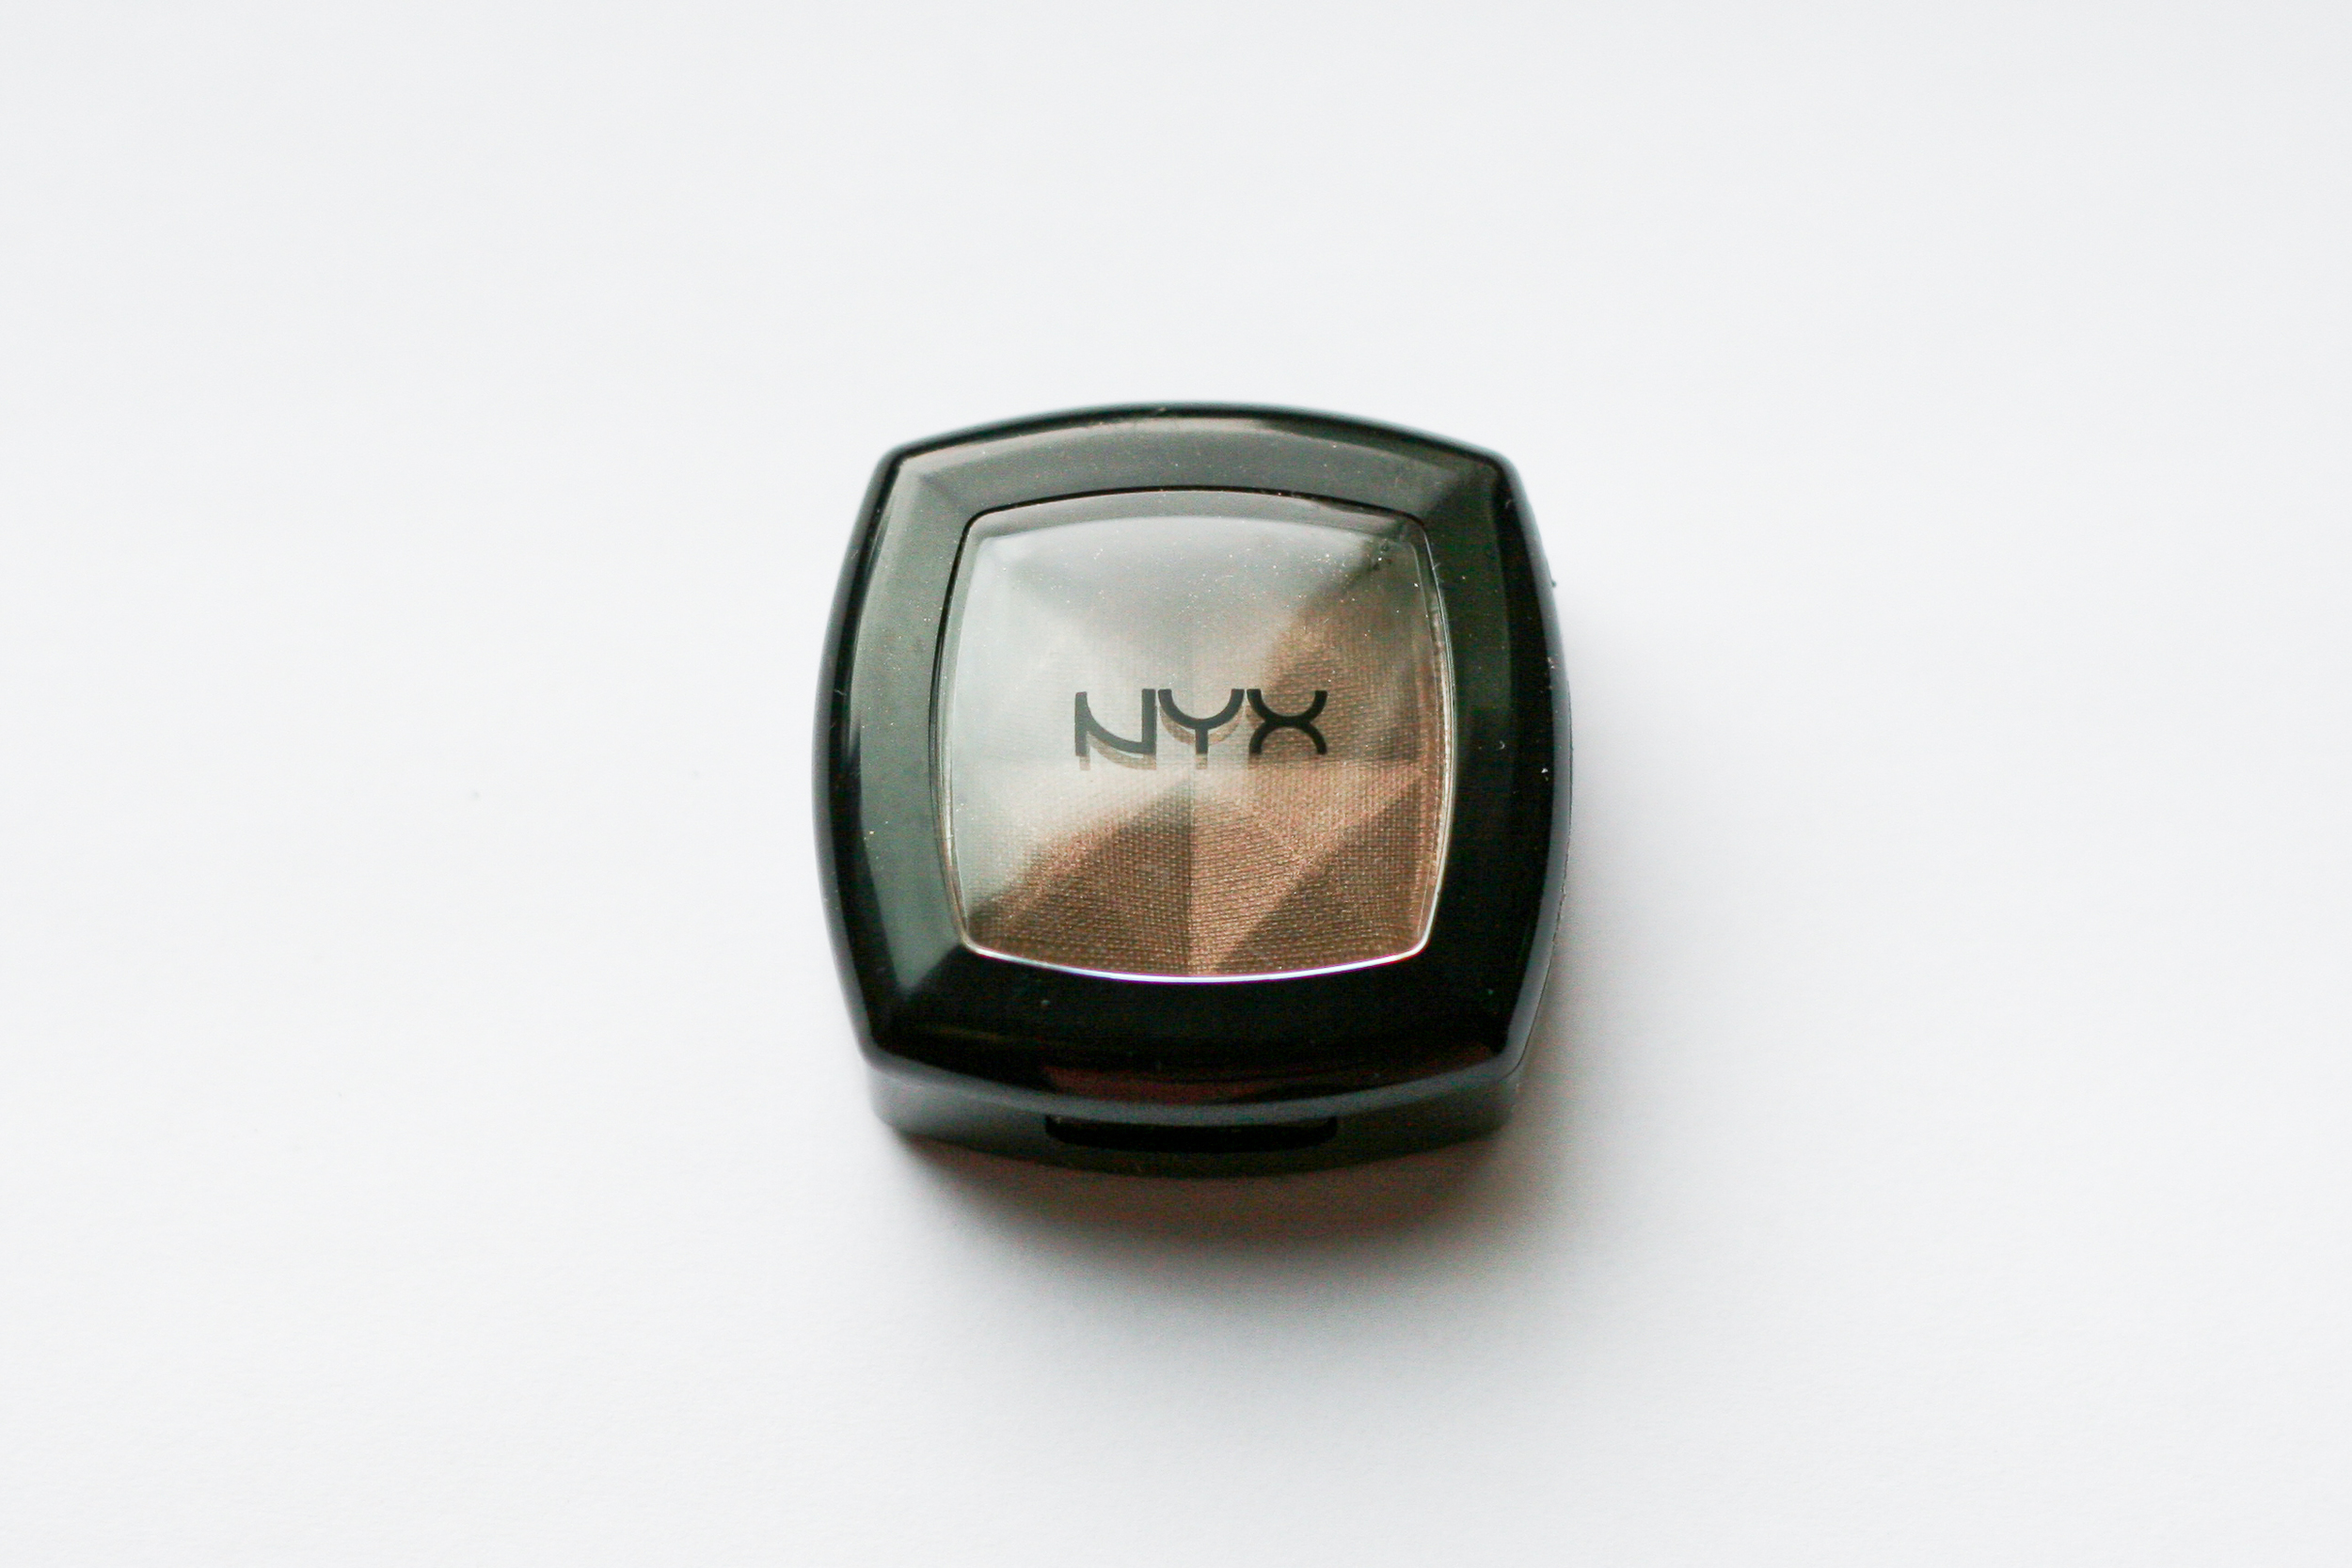 NYX eyeshadow in Iced Mocha.